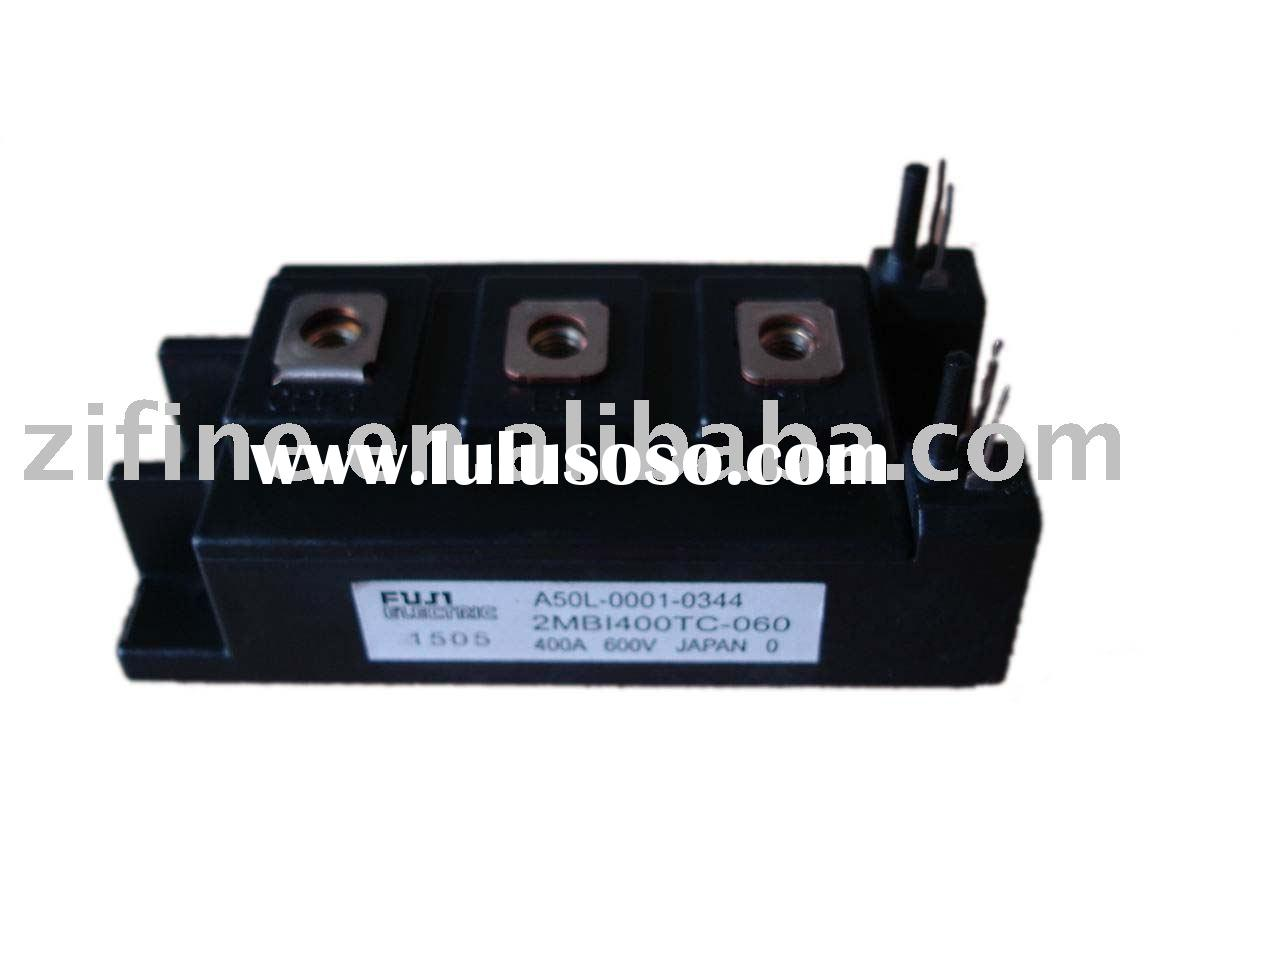 W18nk80z Igbt Transistor For Sale Pricechina Manufacturer Inverter Circuit Manufacturers In Lulusoso Bsm150gt120dn2 Three Phase